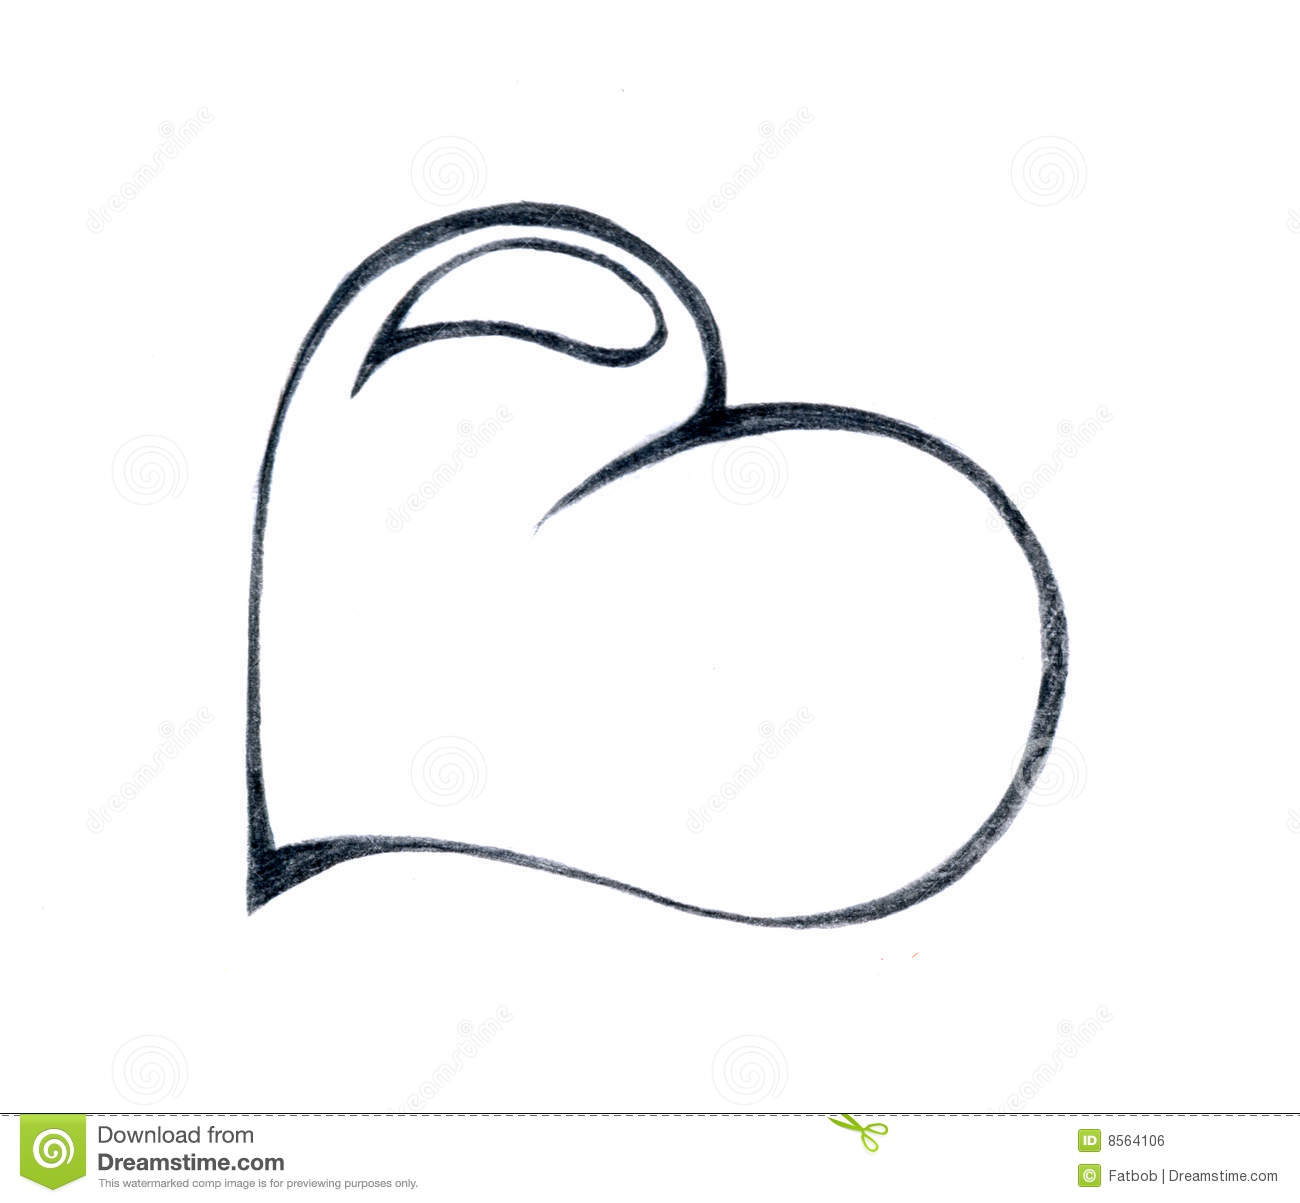 An artistic pencil drawing of a valentine heart